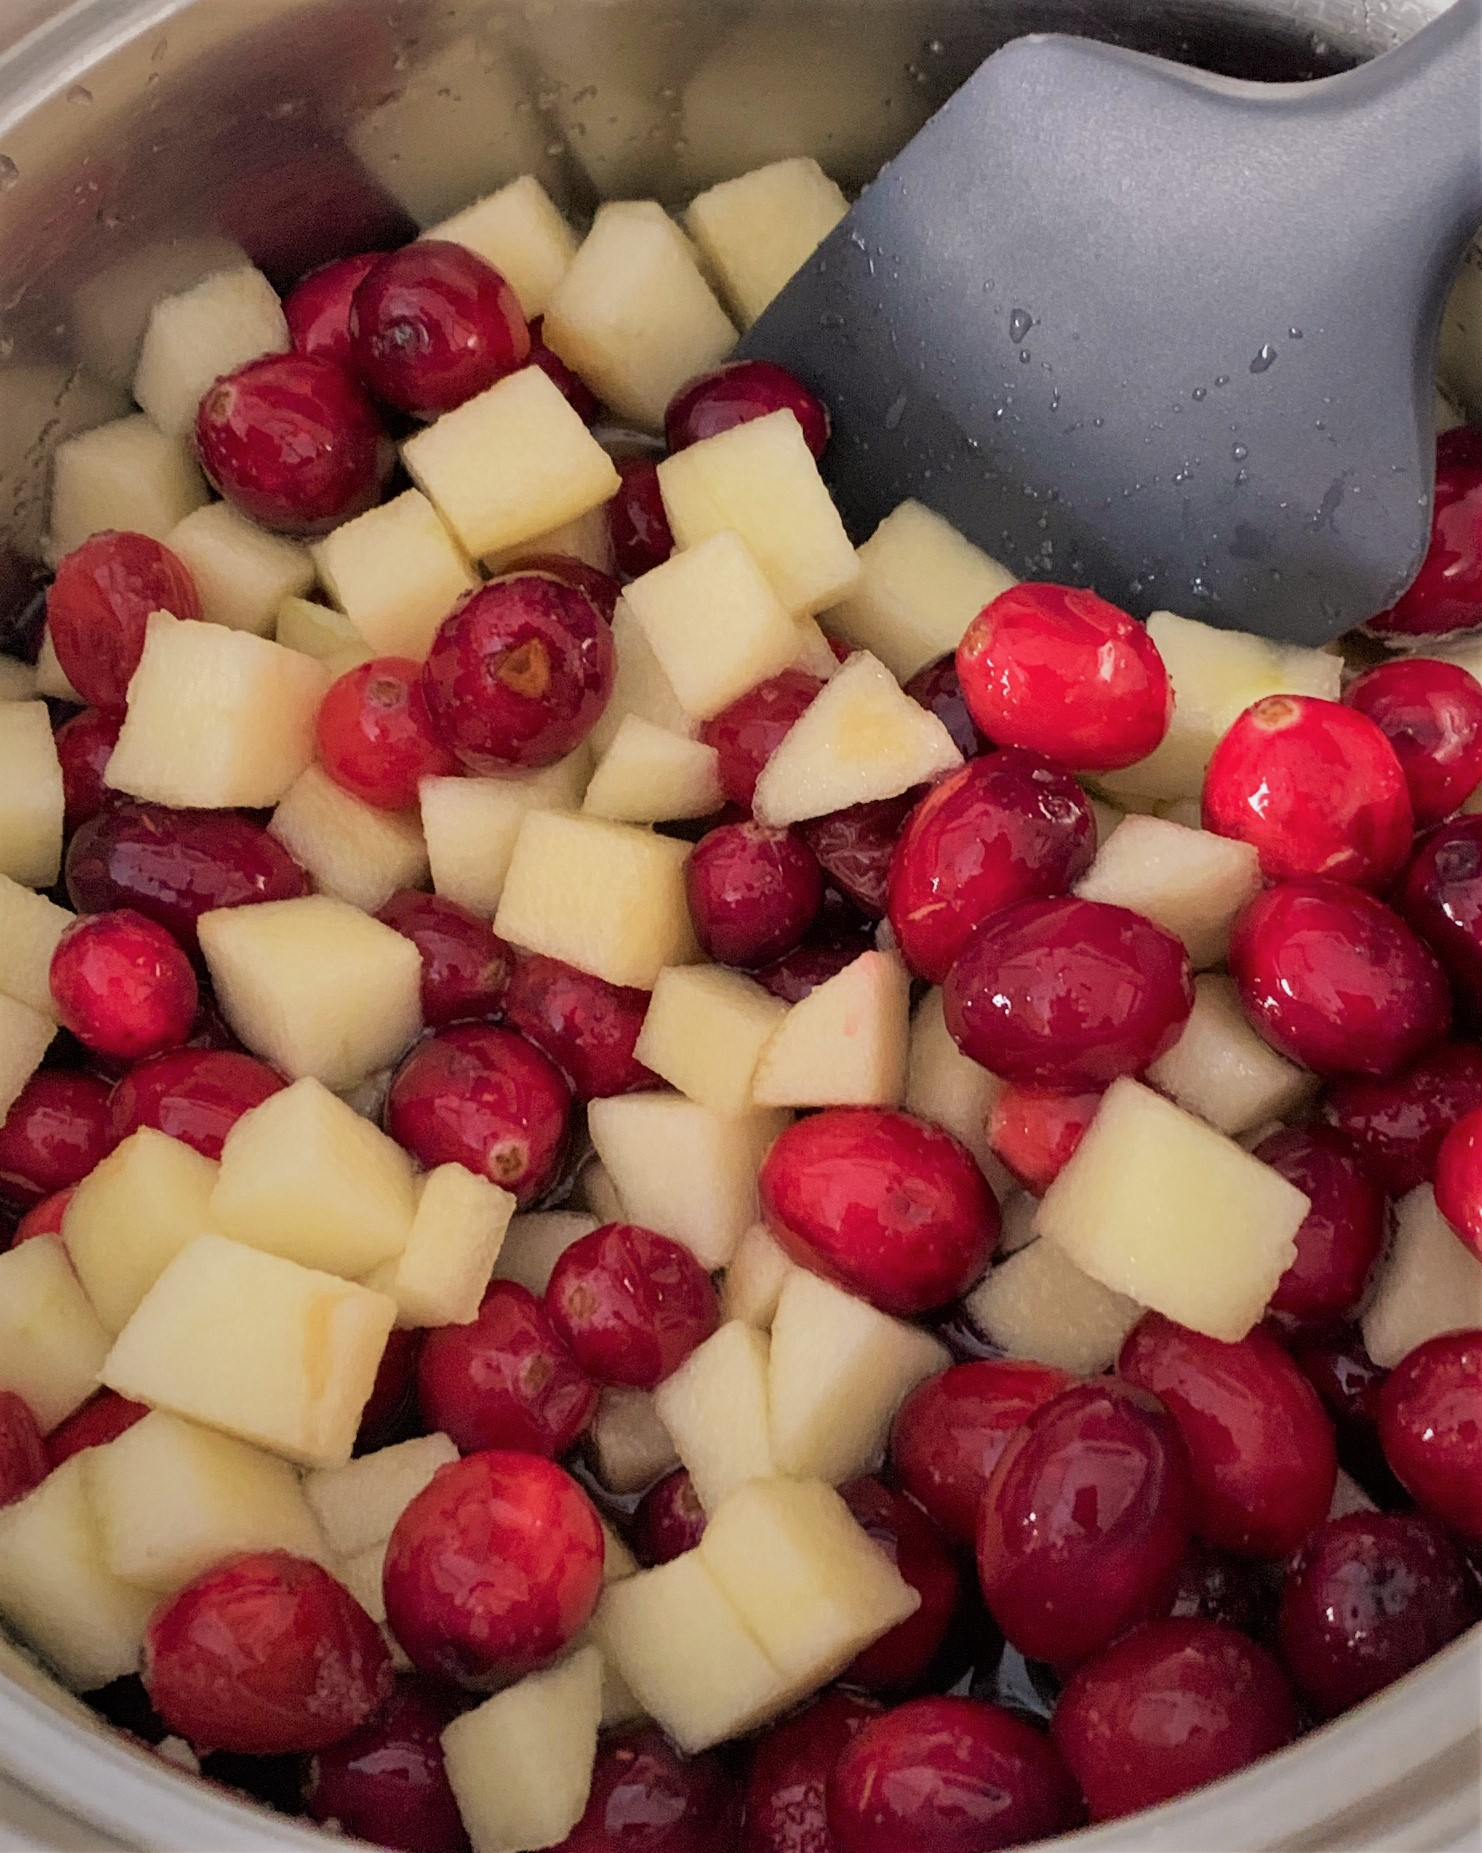 All the ingredients for our Apple-Cinnamon Cranberry Sauce in the pot